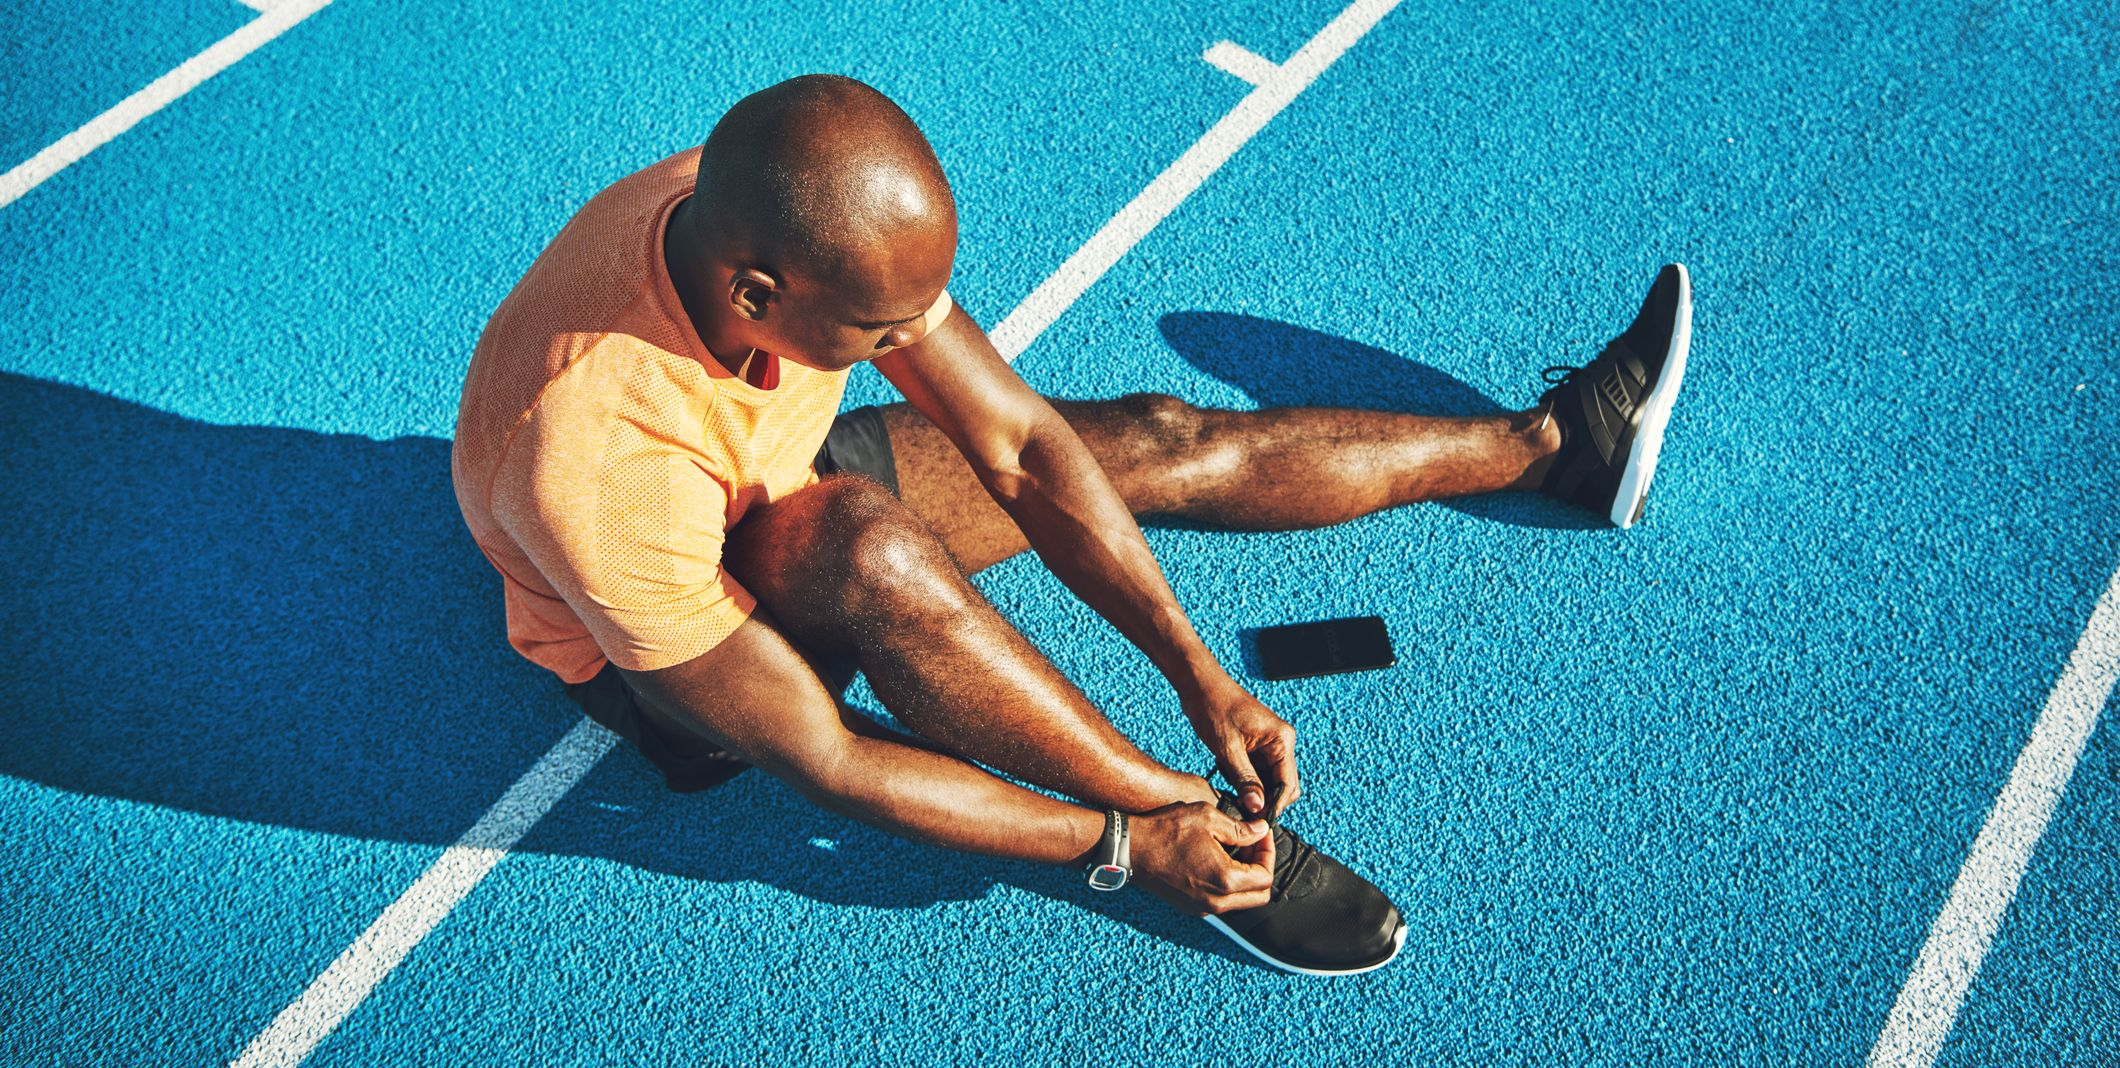 The 8 Best Fitness Apps to Help You Bulk Up (or Slim Down)